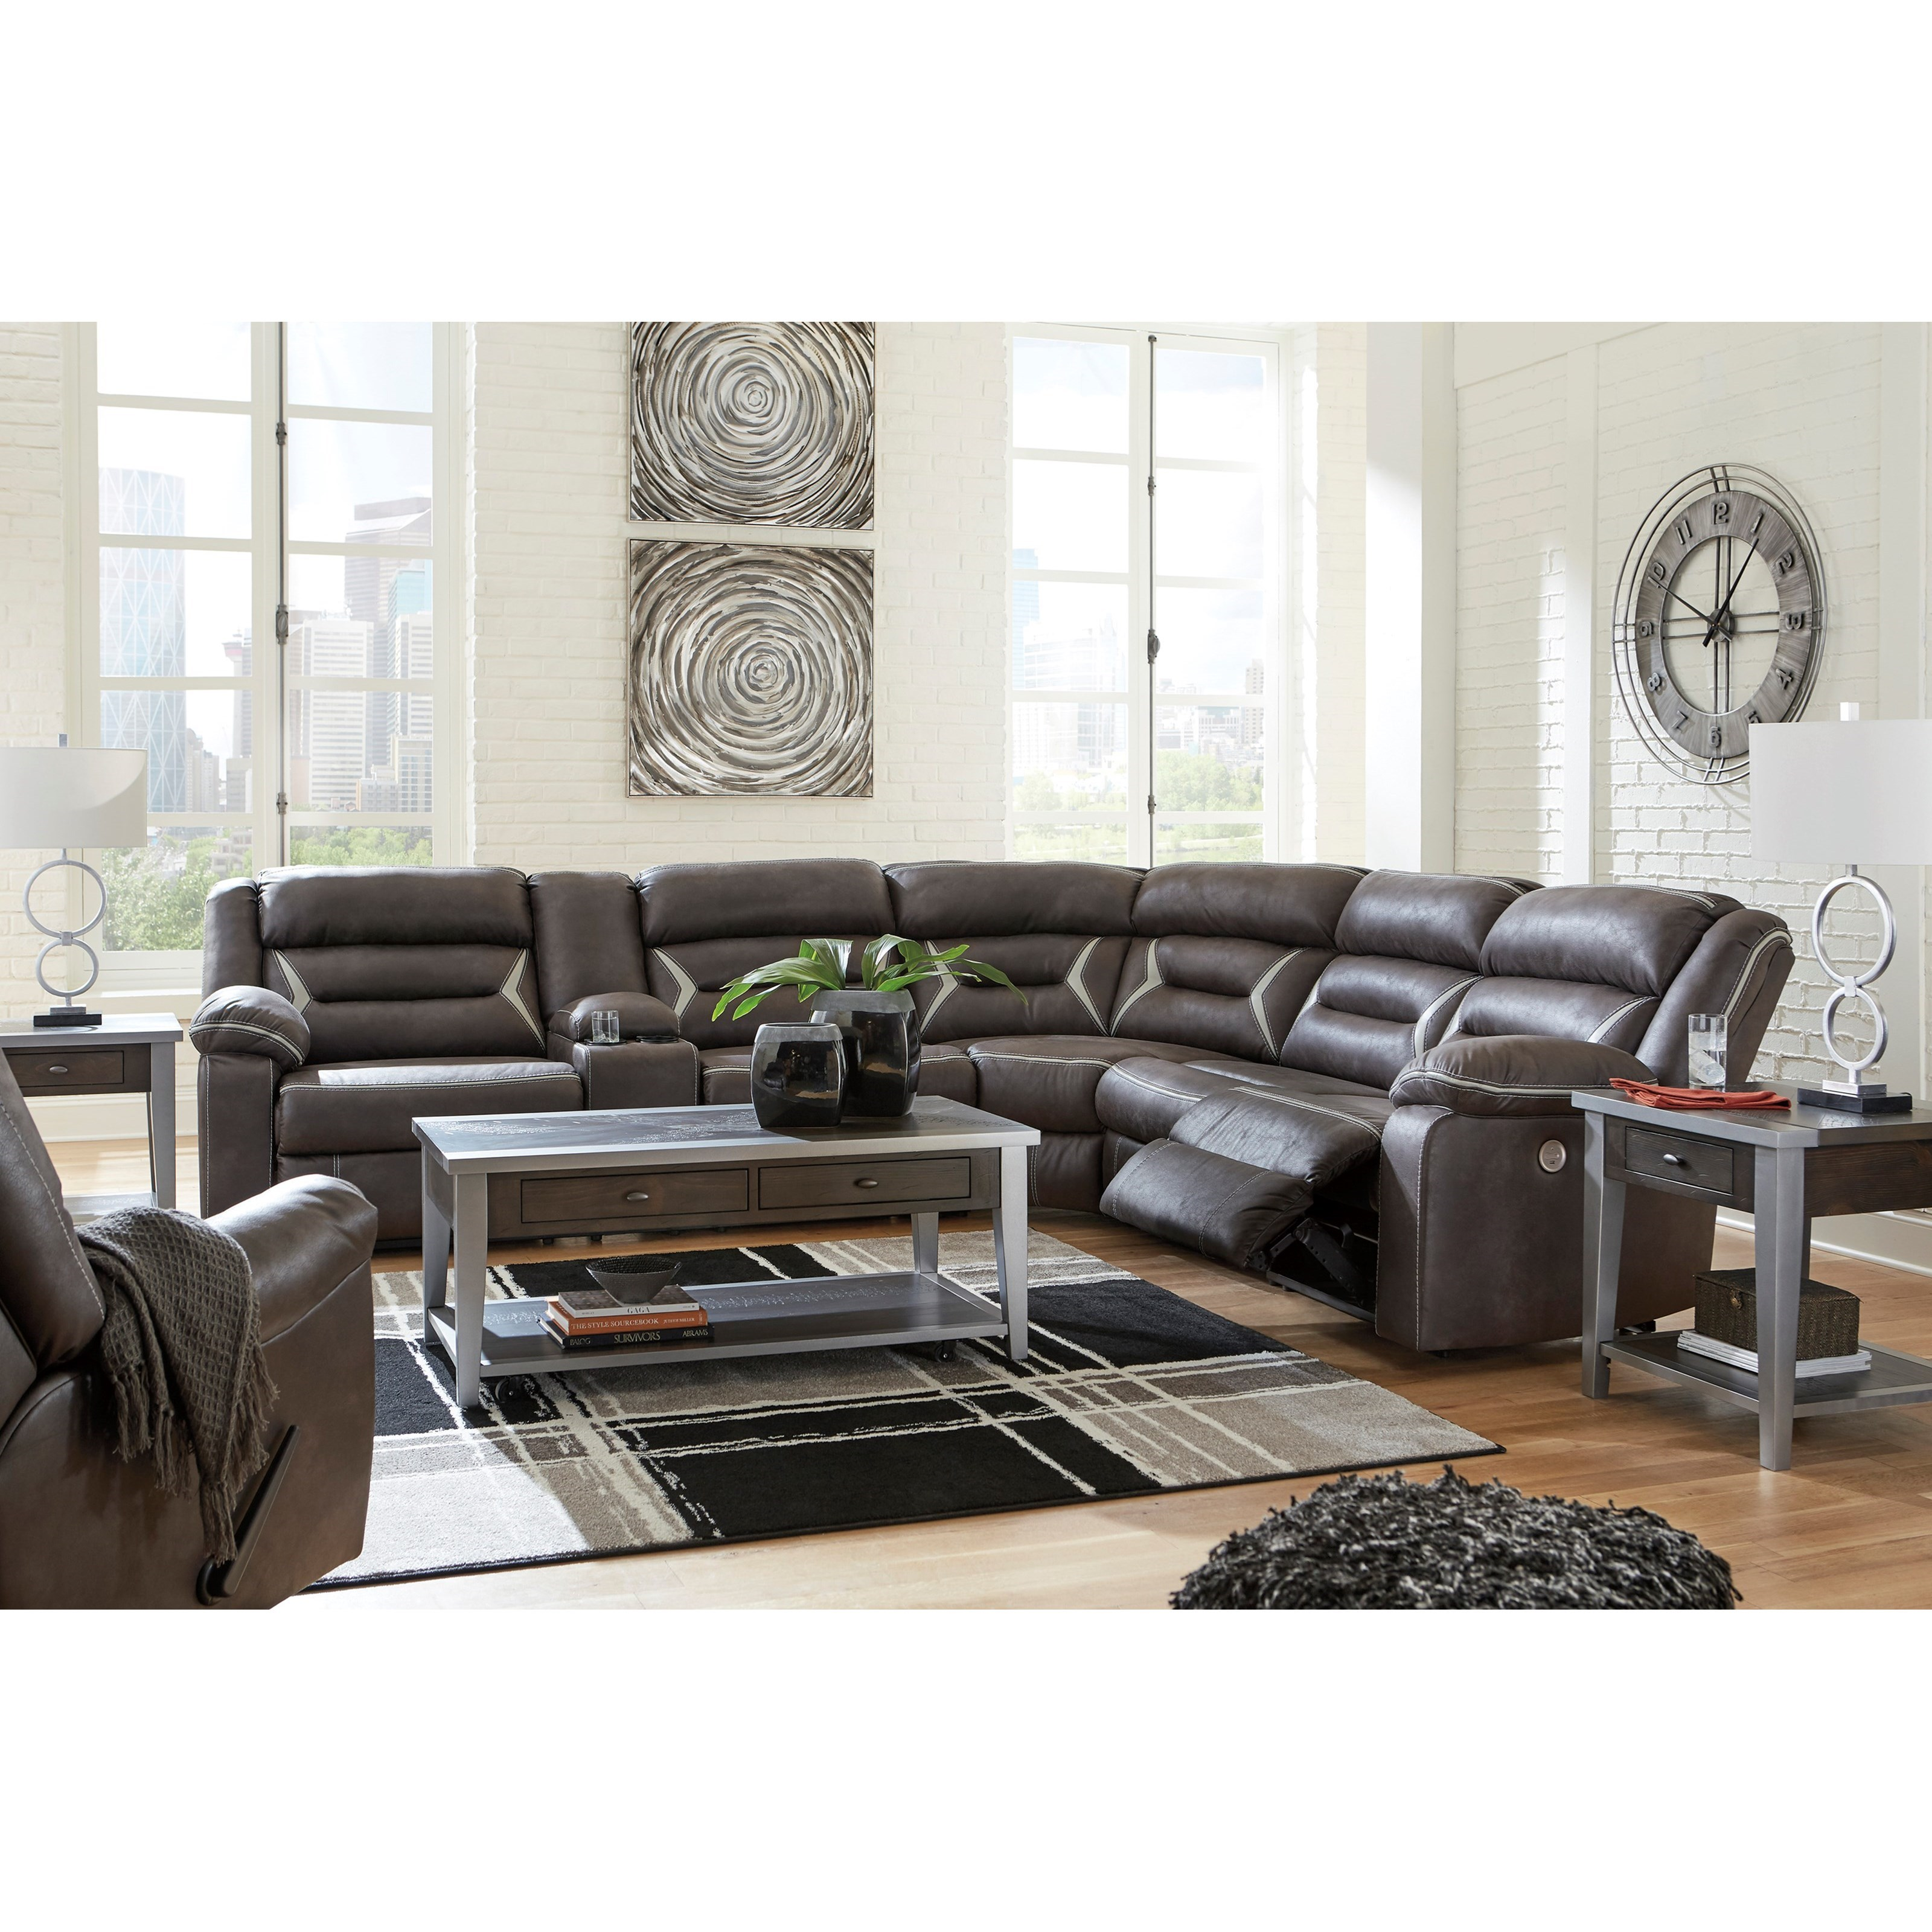 Kincord Power Reclining Living Room Group by Ashley (Signature Design) at Johnny Janosik